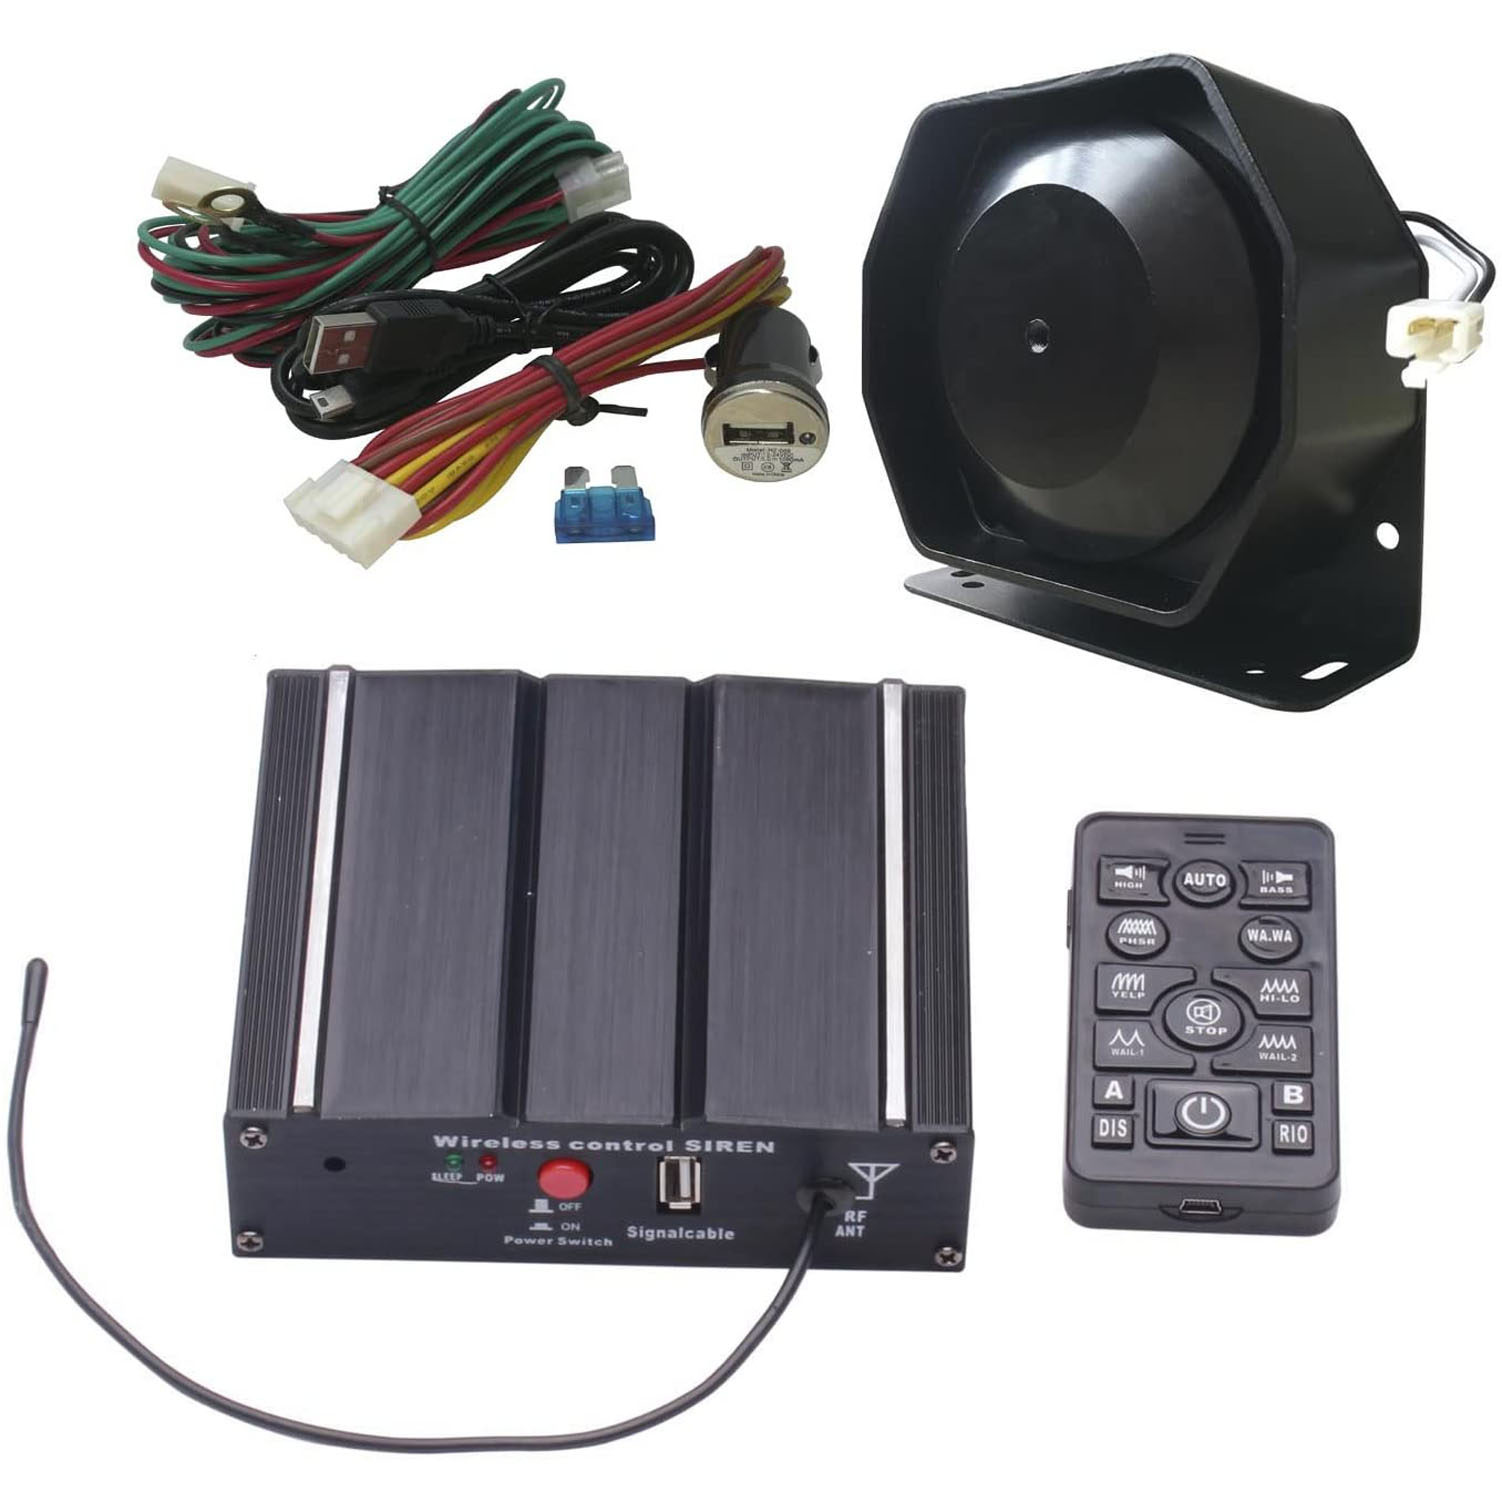 Police Siren Kit with Speaker Wireless Remote Controller and PA system for broadcasting